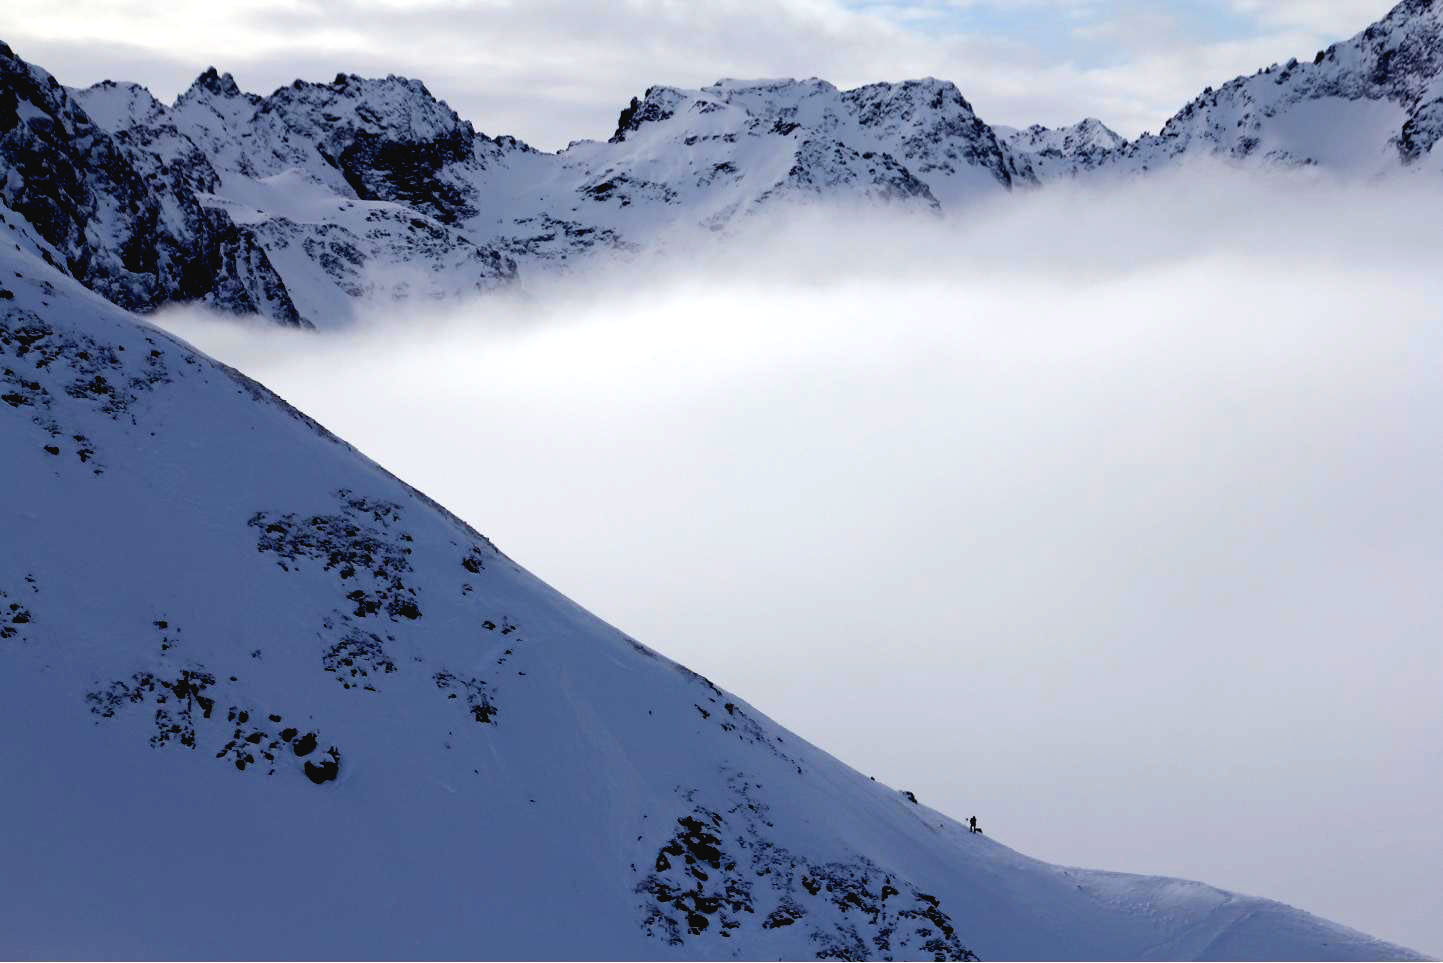 Lone skier above clouds © JonoVernon-Powell